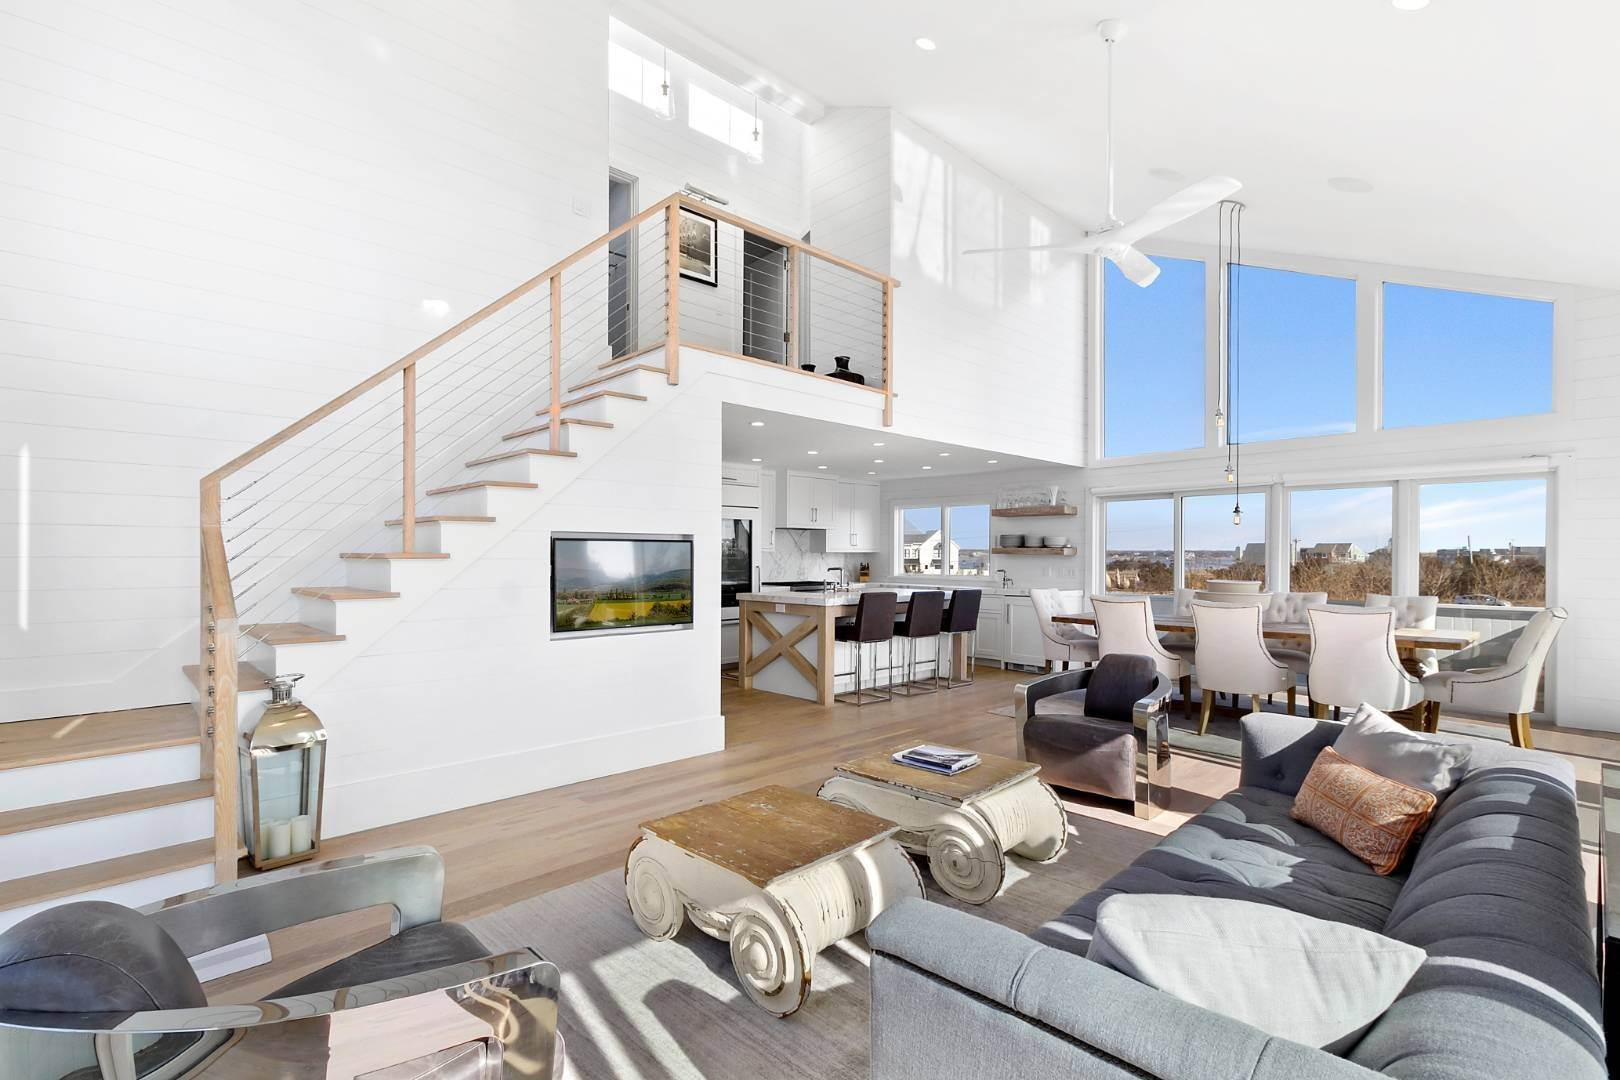 Single Family Home for Sale at Renovated Turn-Key Oceanfront 107 Dune Rd, Quogue Village, NY 11978